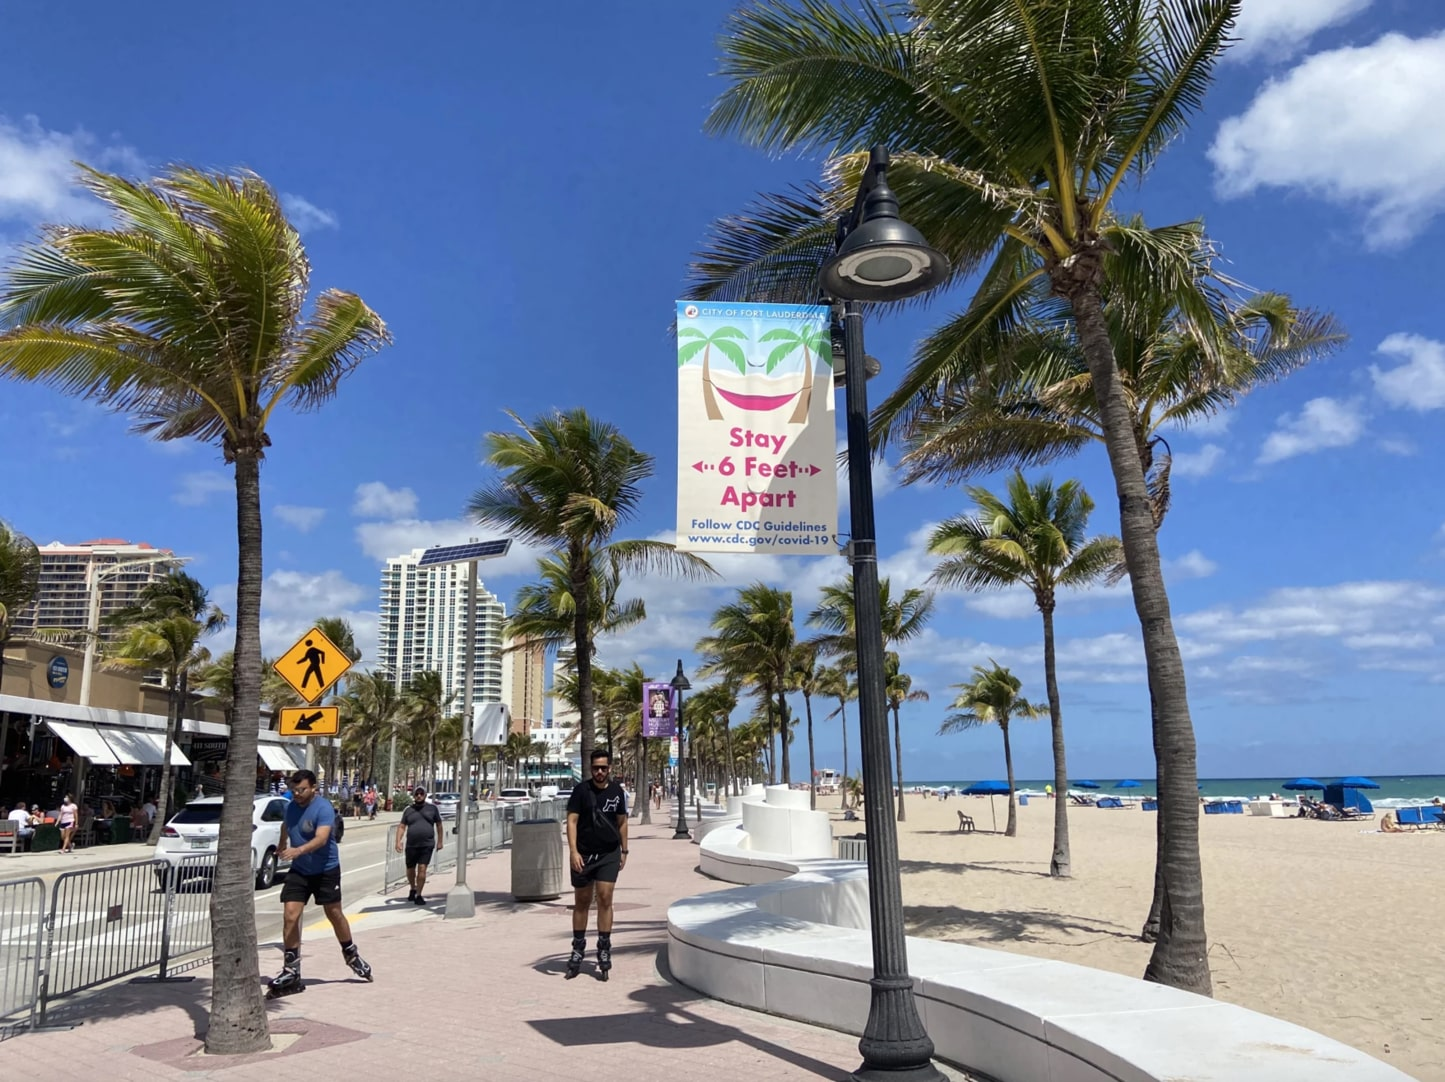 a daytime shot of the fort lauderdale boardwalk with palm trees and people rollerblading. a sign hangs from a lamppost saying 'stay 6 feet apart, follow cdc guidelines'